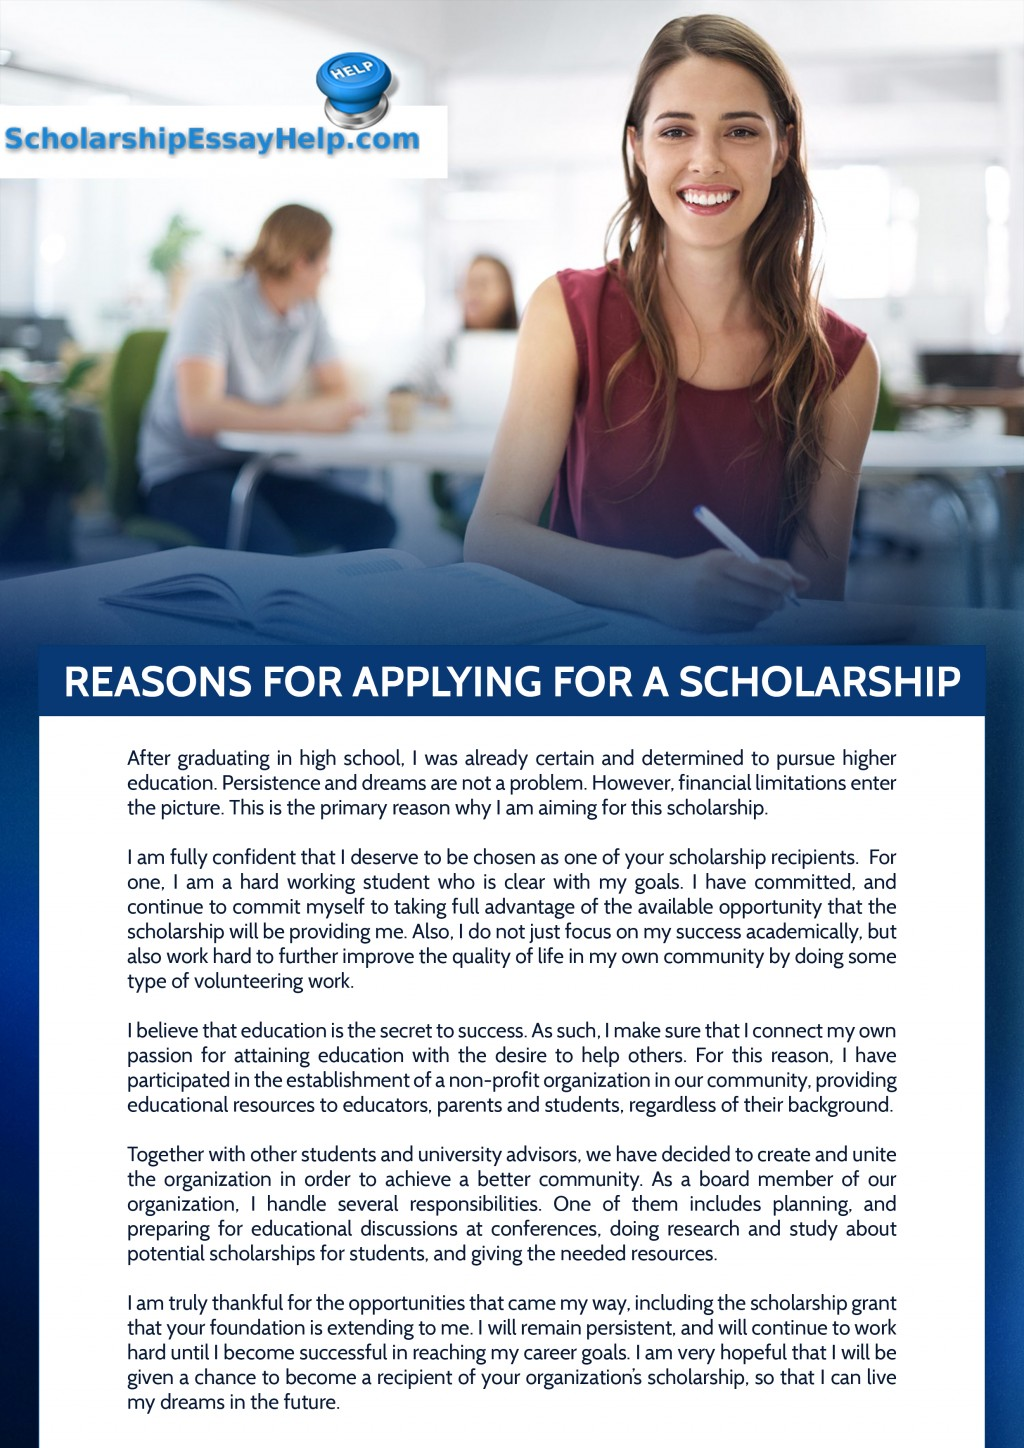 013 Reasons For Applying Scholarship Why I Deserve This Essay Top How To Write Pdf Sample Large